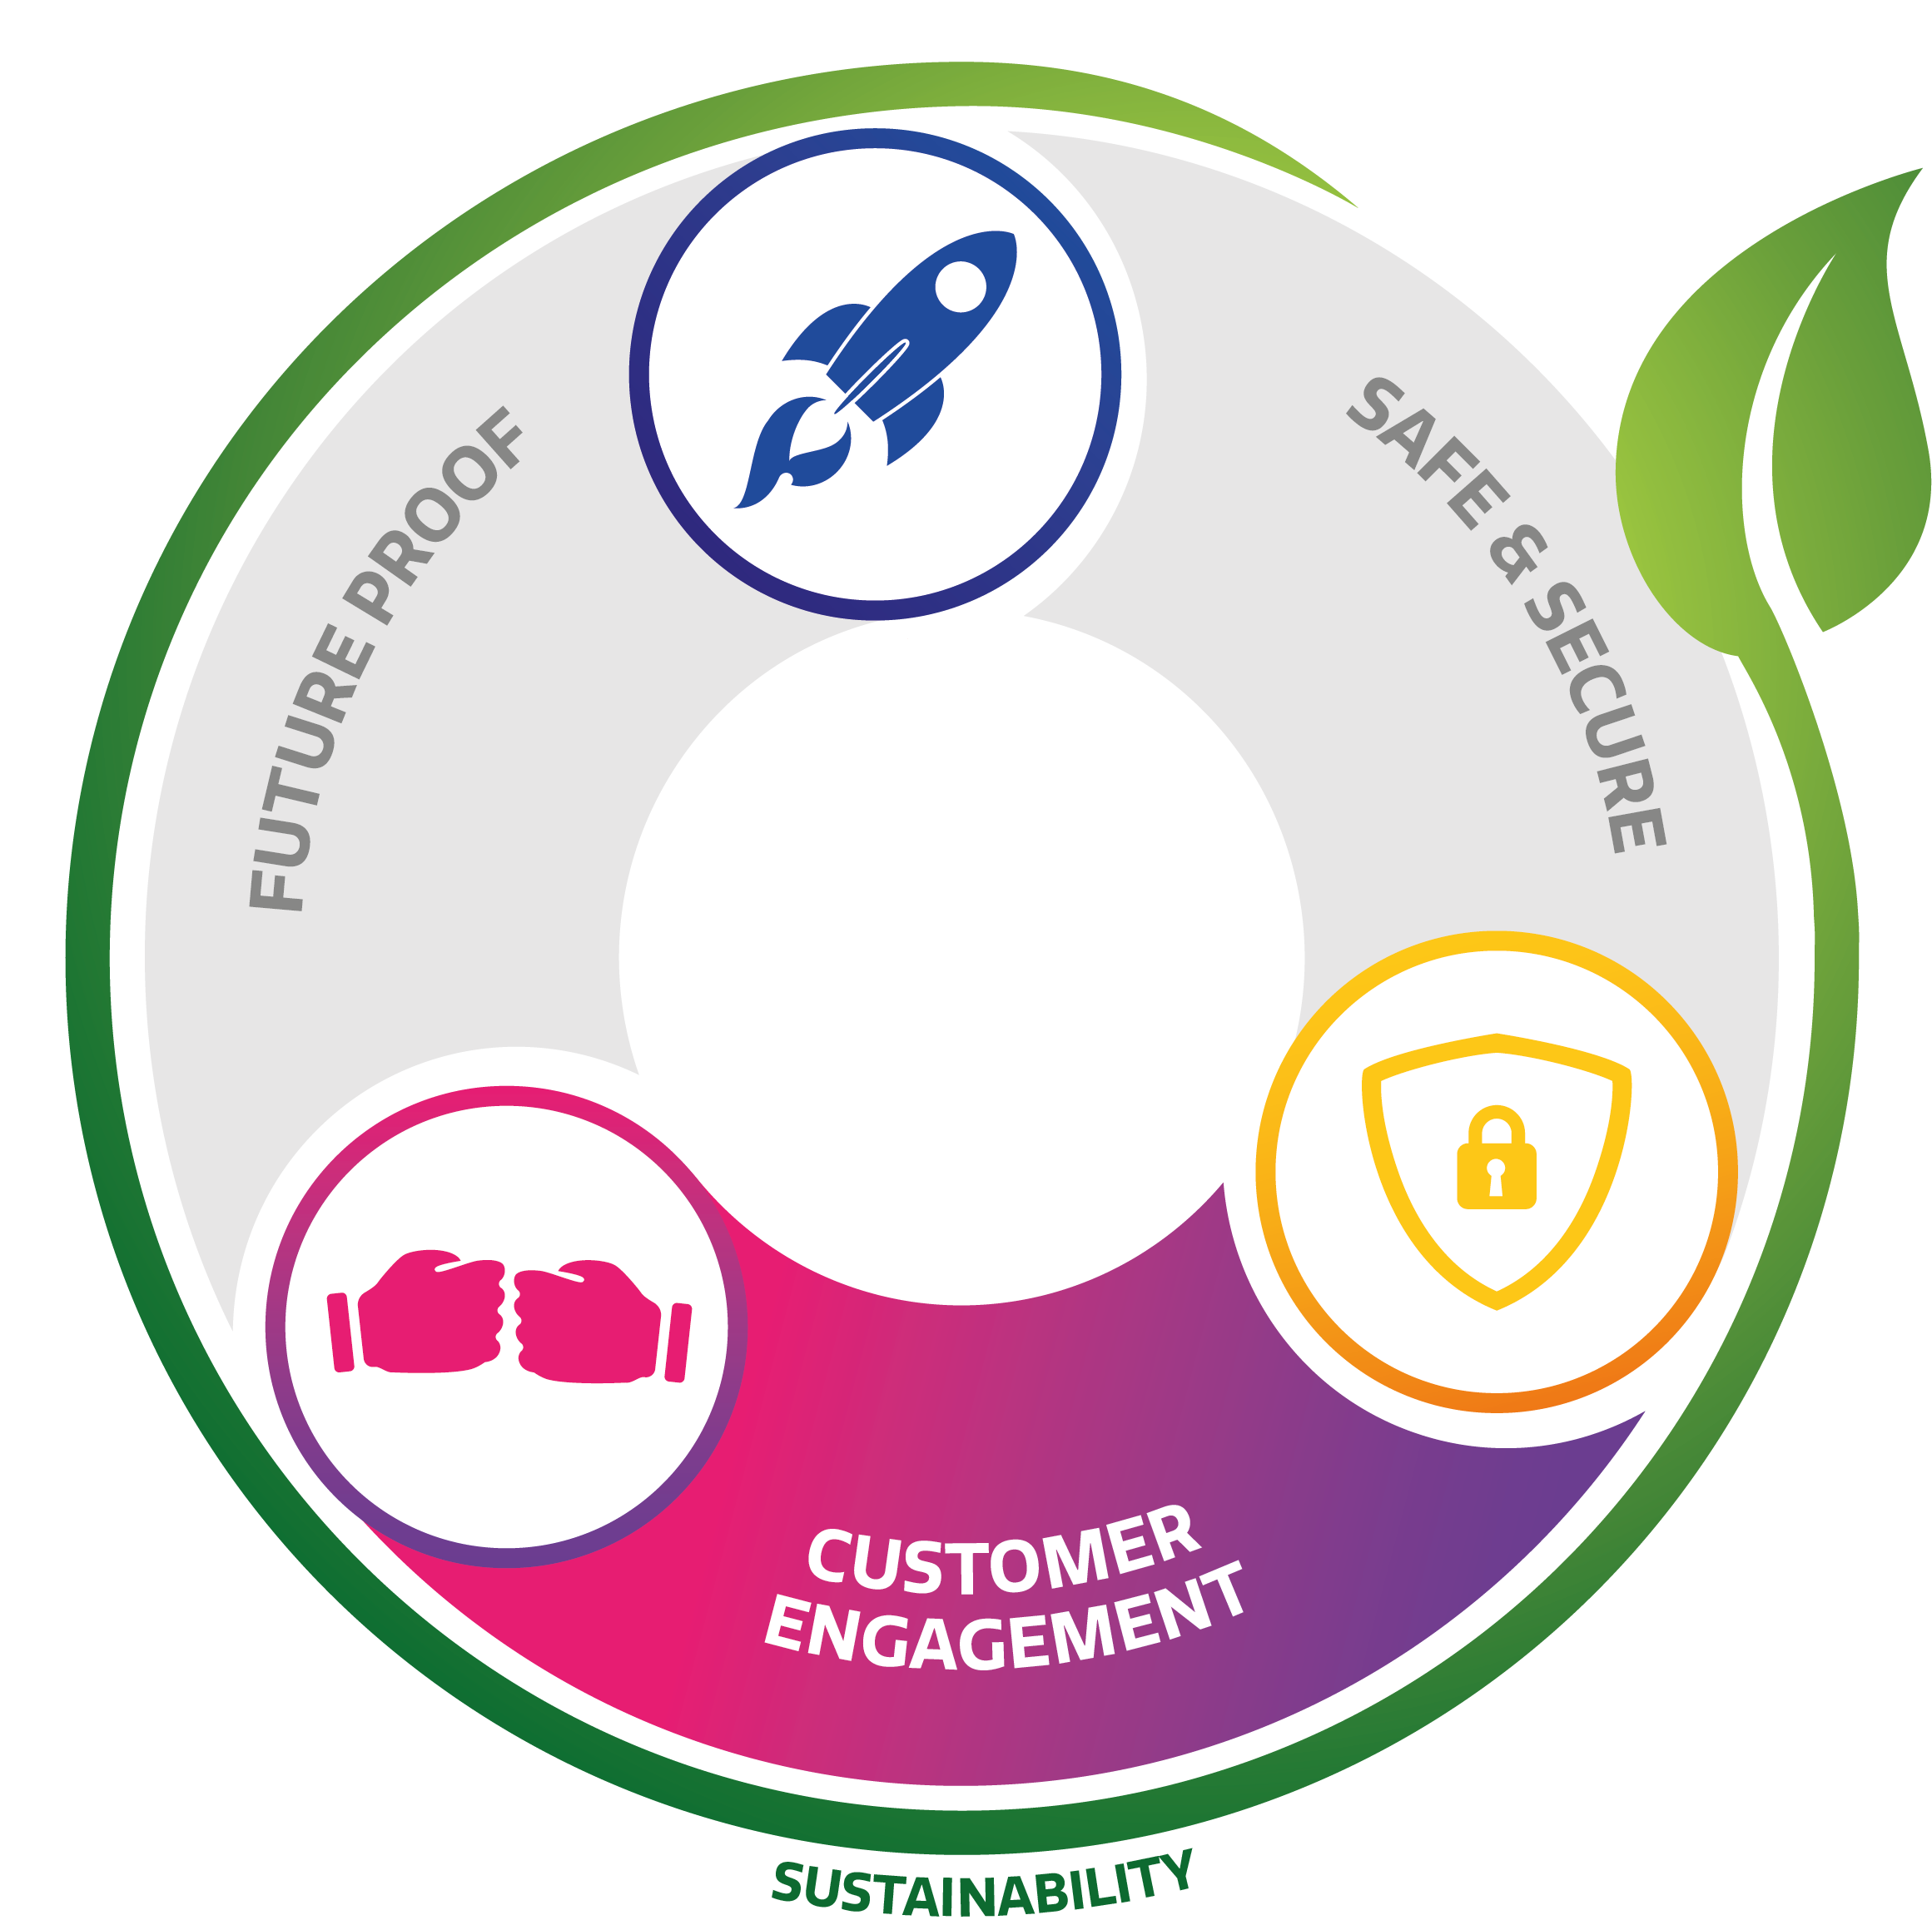 Customer engagement CTOUCH circle